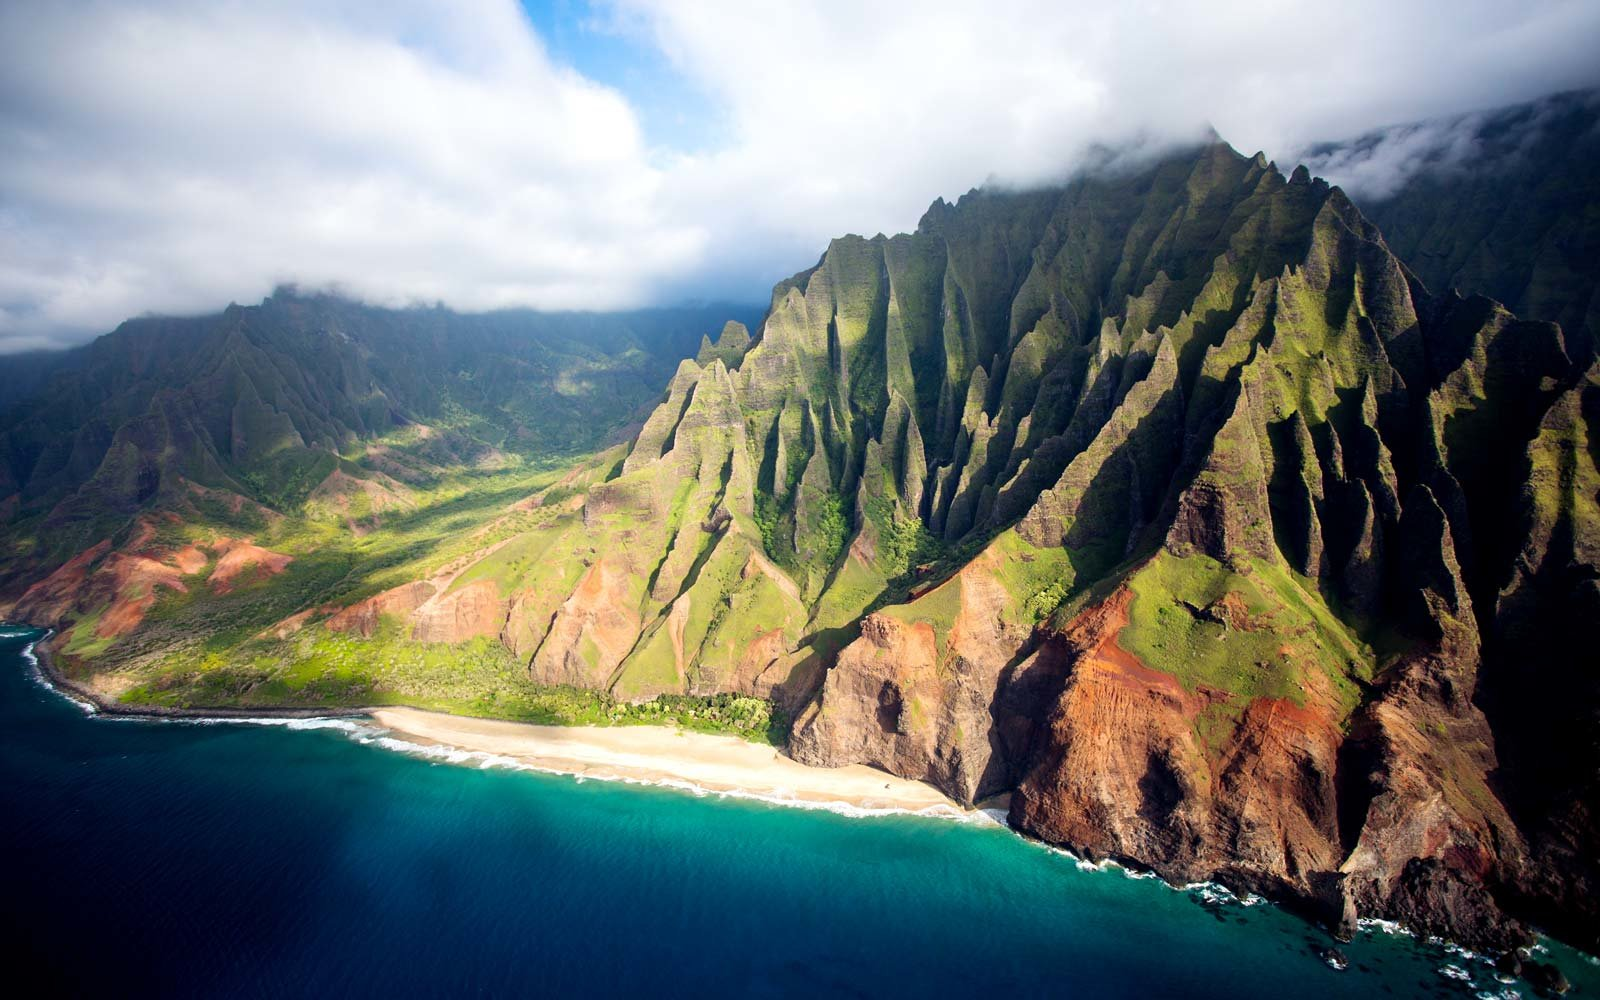 Napali Coast, Kauai, Hawaii